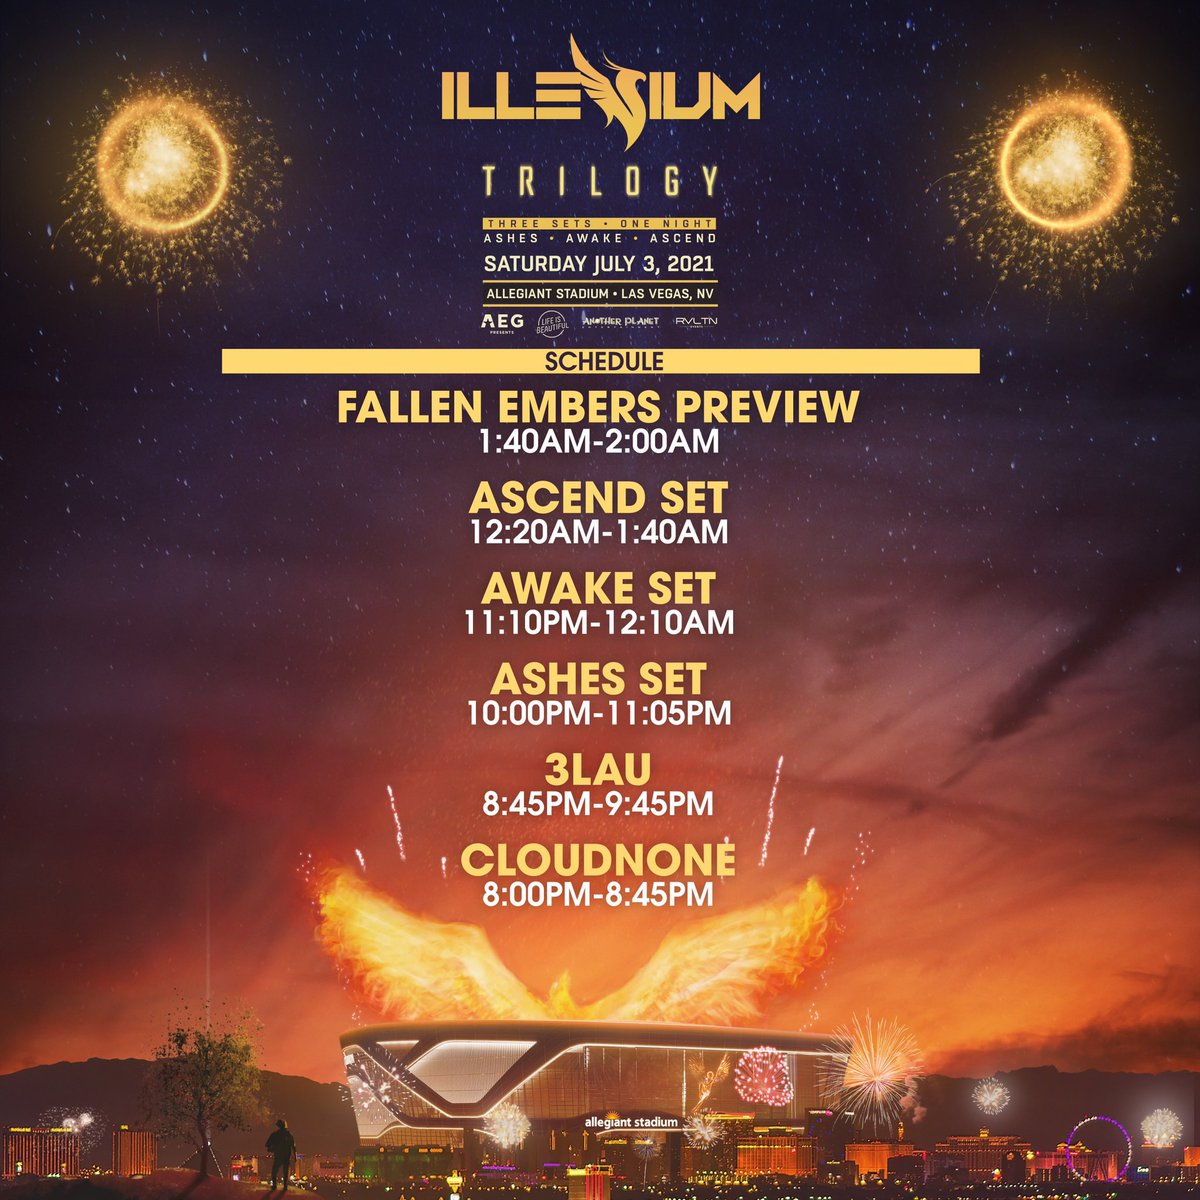 """ILLENIUM on Twitter: """"Releasing set times for TRILOGY so everyone can plan  accordingly! Can't wait to see you all at Allegiant Stadium in Las Vegas  July 3rd 🙂 Tix → https://t.co/tn1zsfqGug… https://t.co/Ibhw6ia6lr"""""""